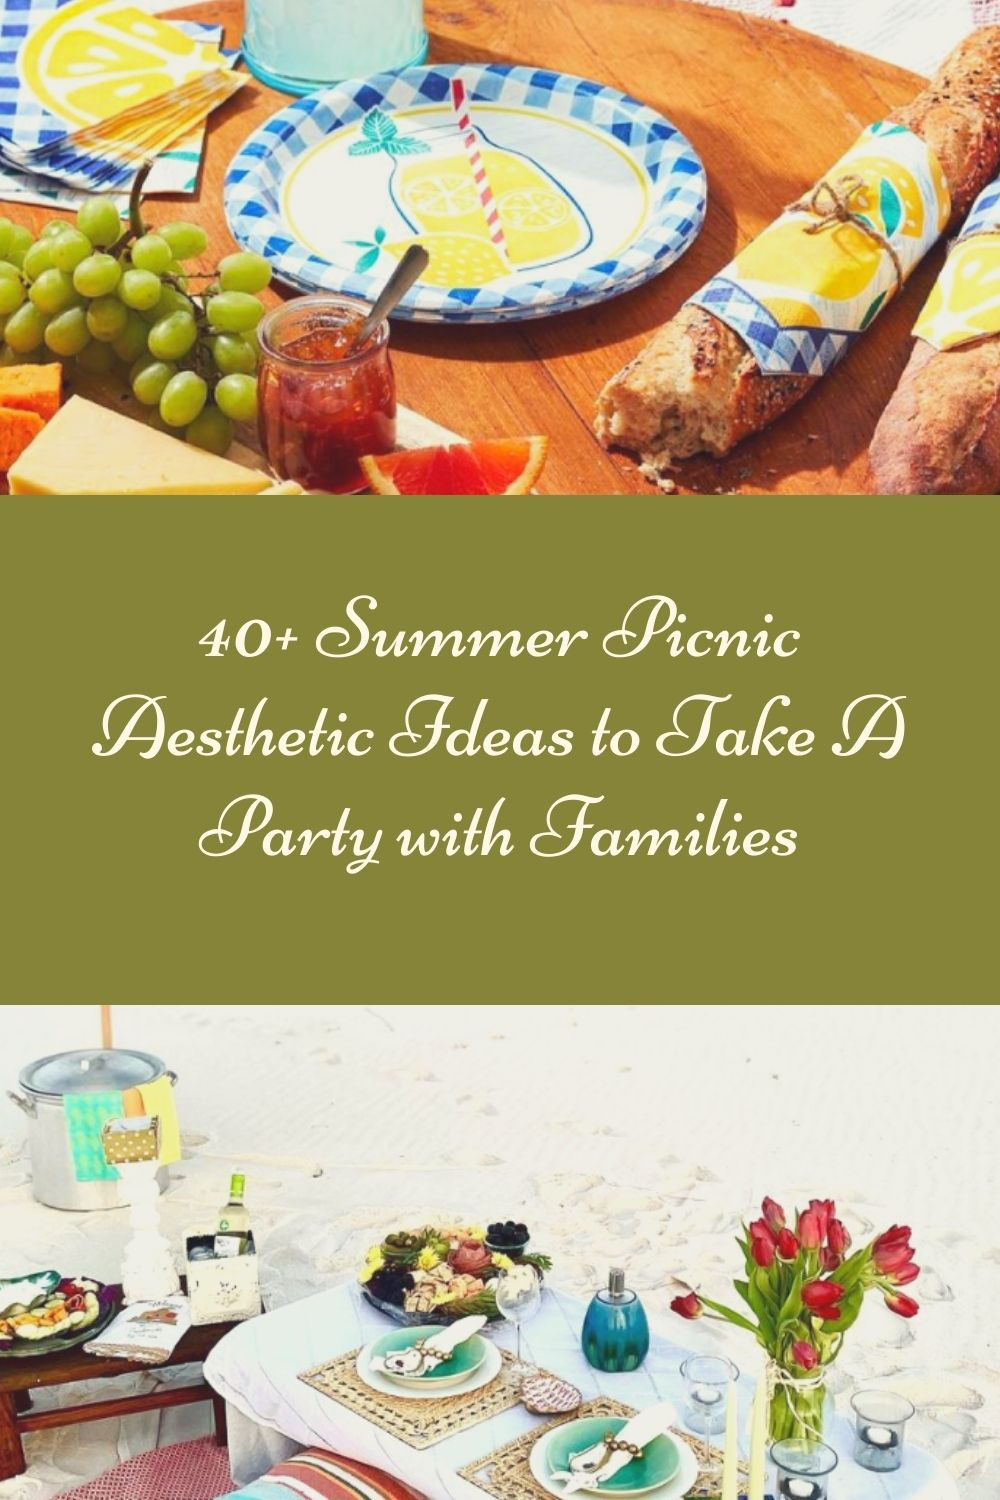 40+ Summer Picnic Aesthetic Ideas to Take A Party with Families